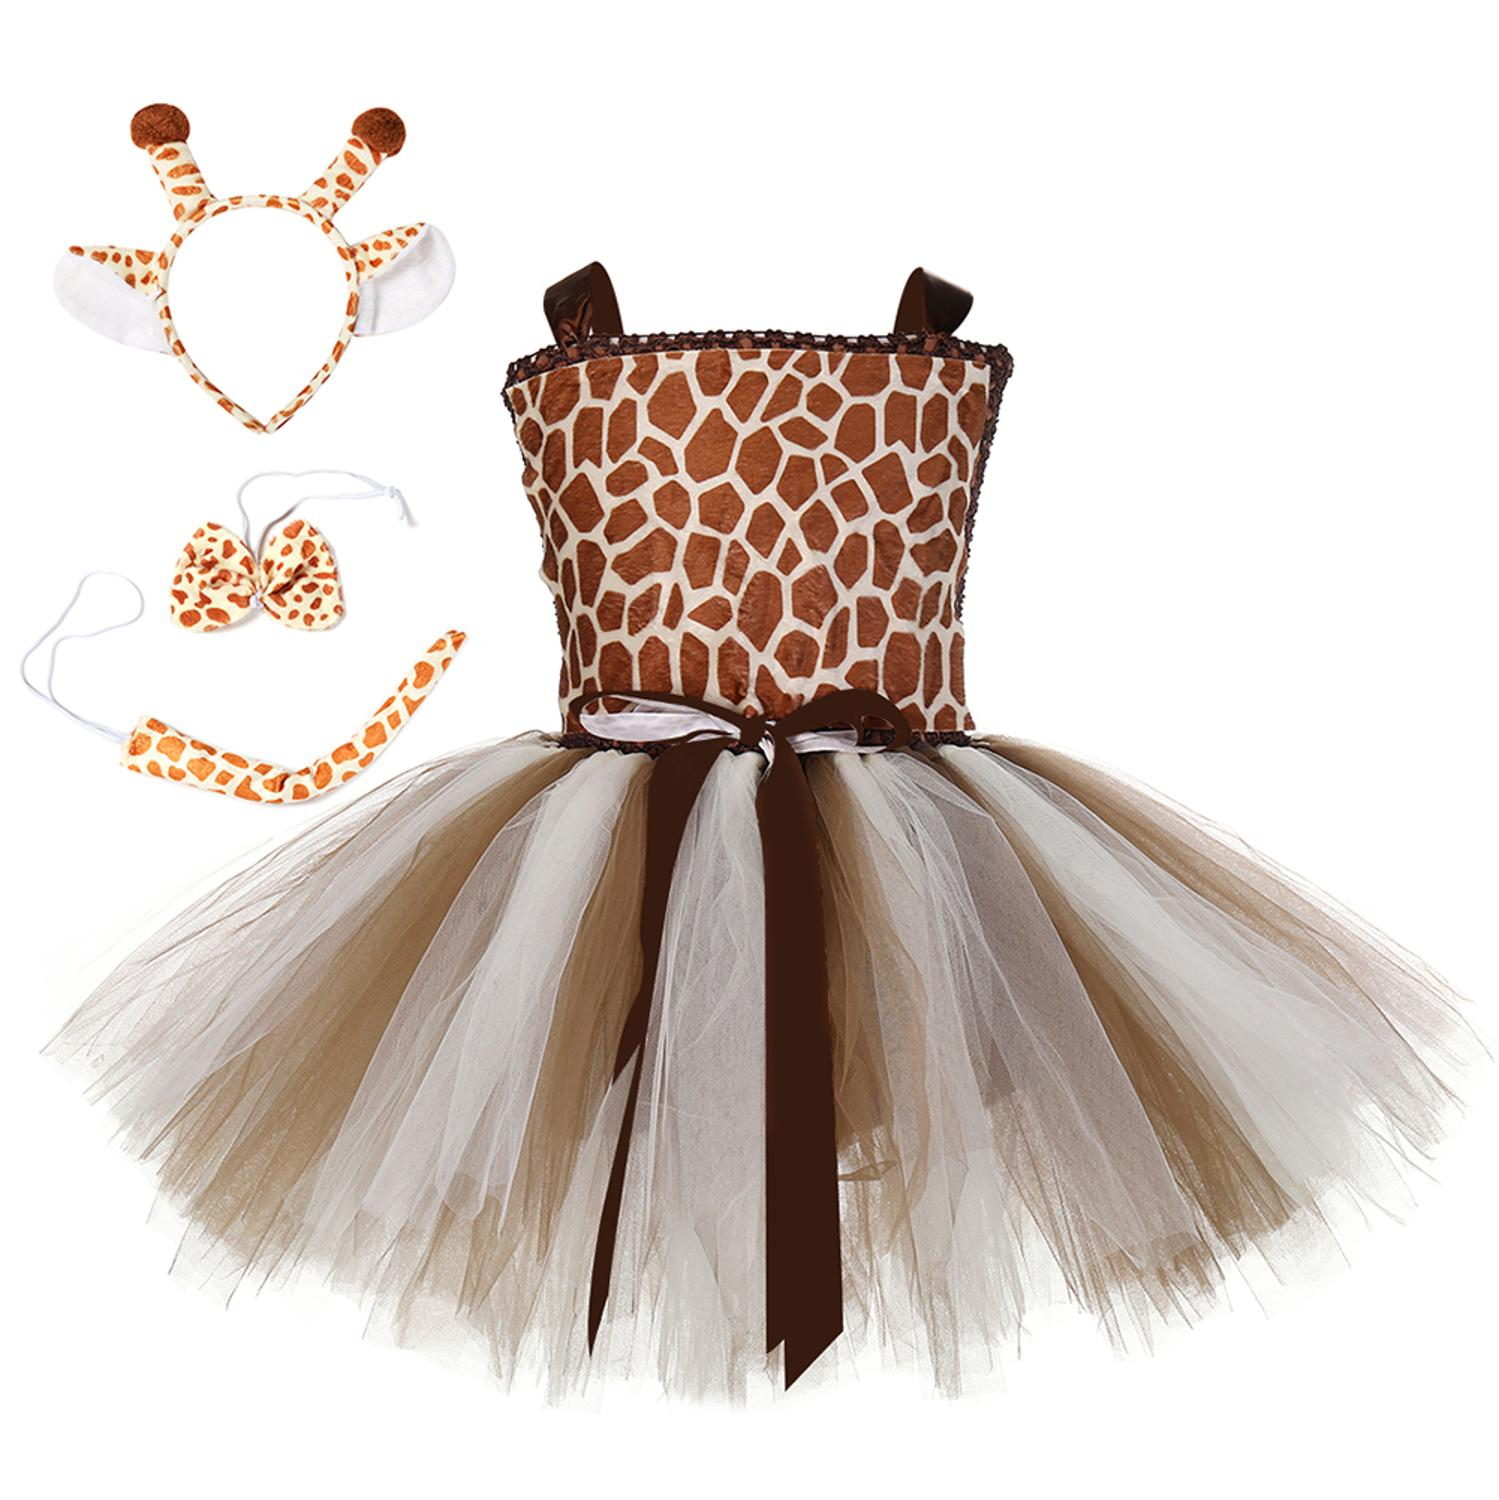 Giraffe Girl Tutu Dress With Matching Headband Set Baby Kids Cute Animal Role Play Costume Outfit Clothes For Halloween Birthday